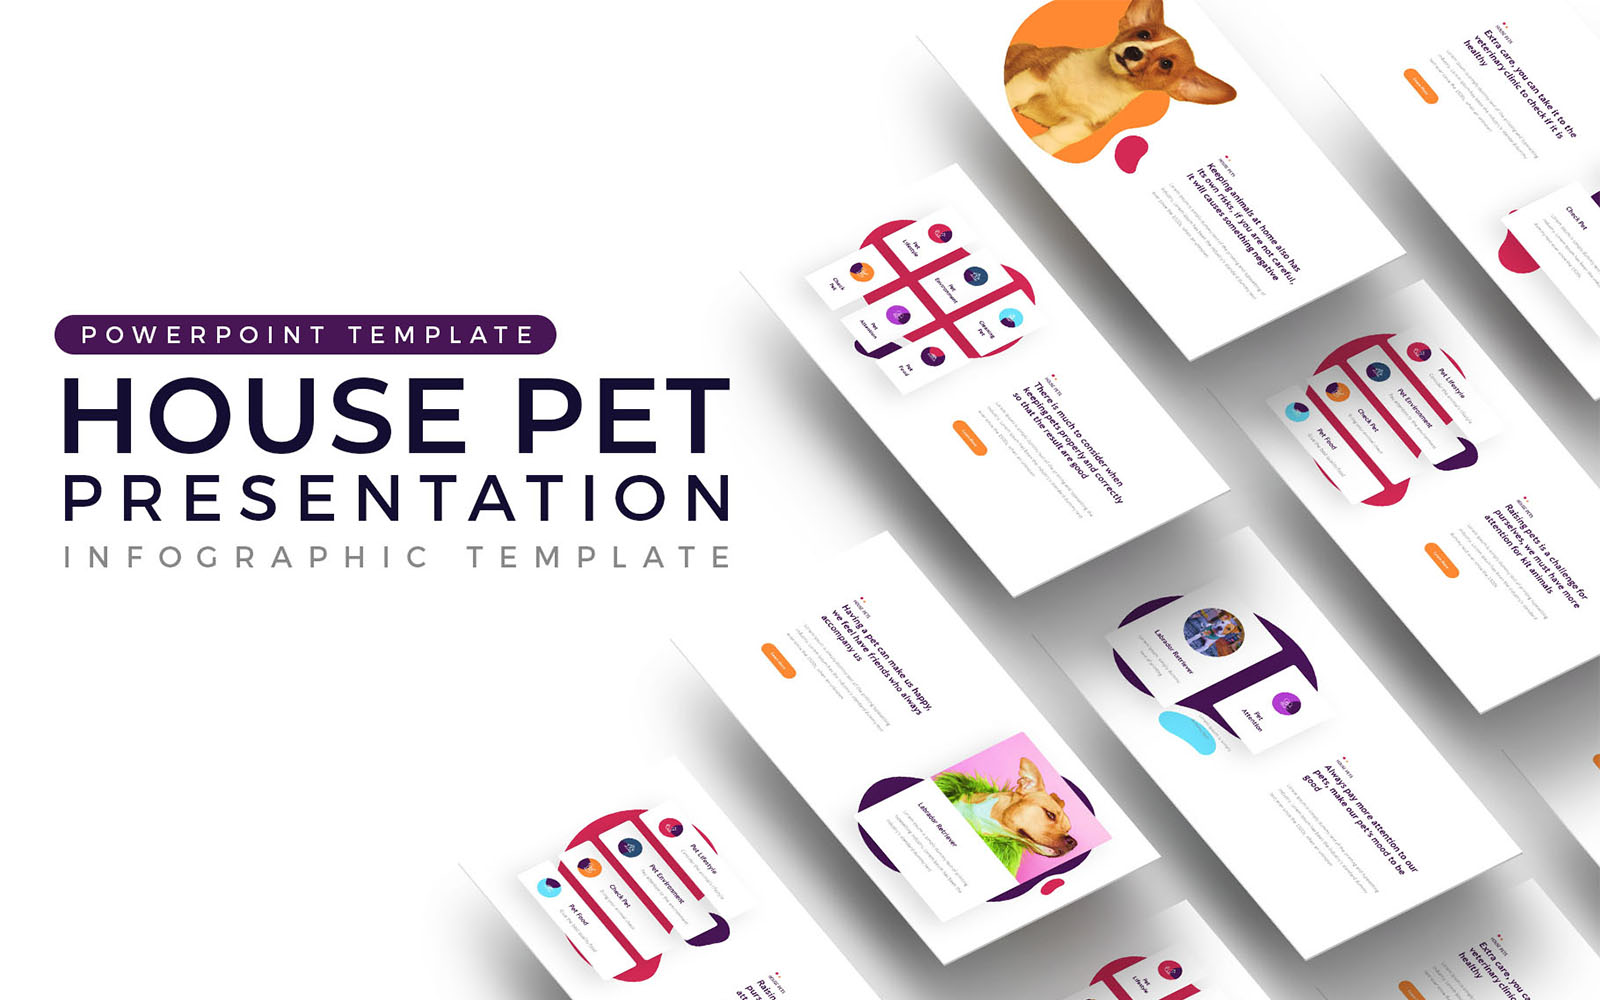 House Pet Presentation PowerPoint Template